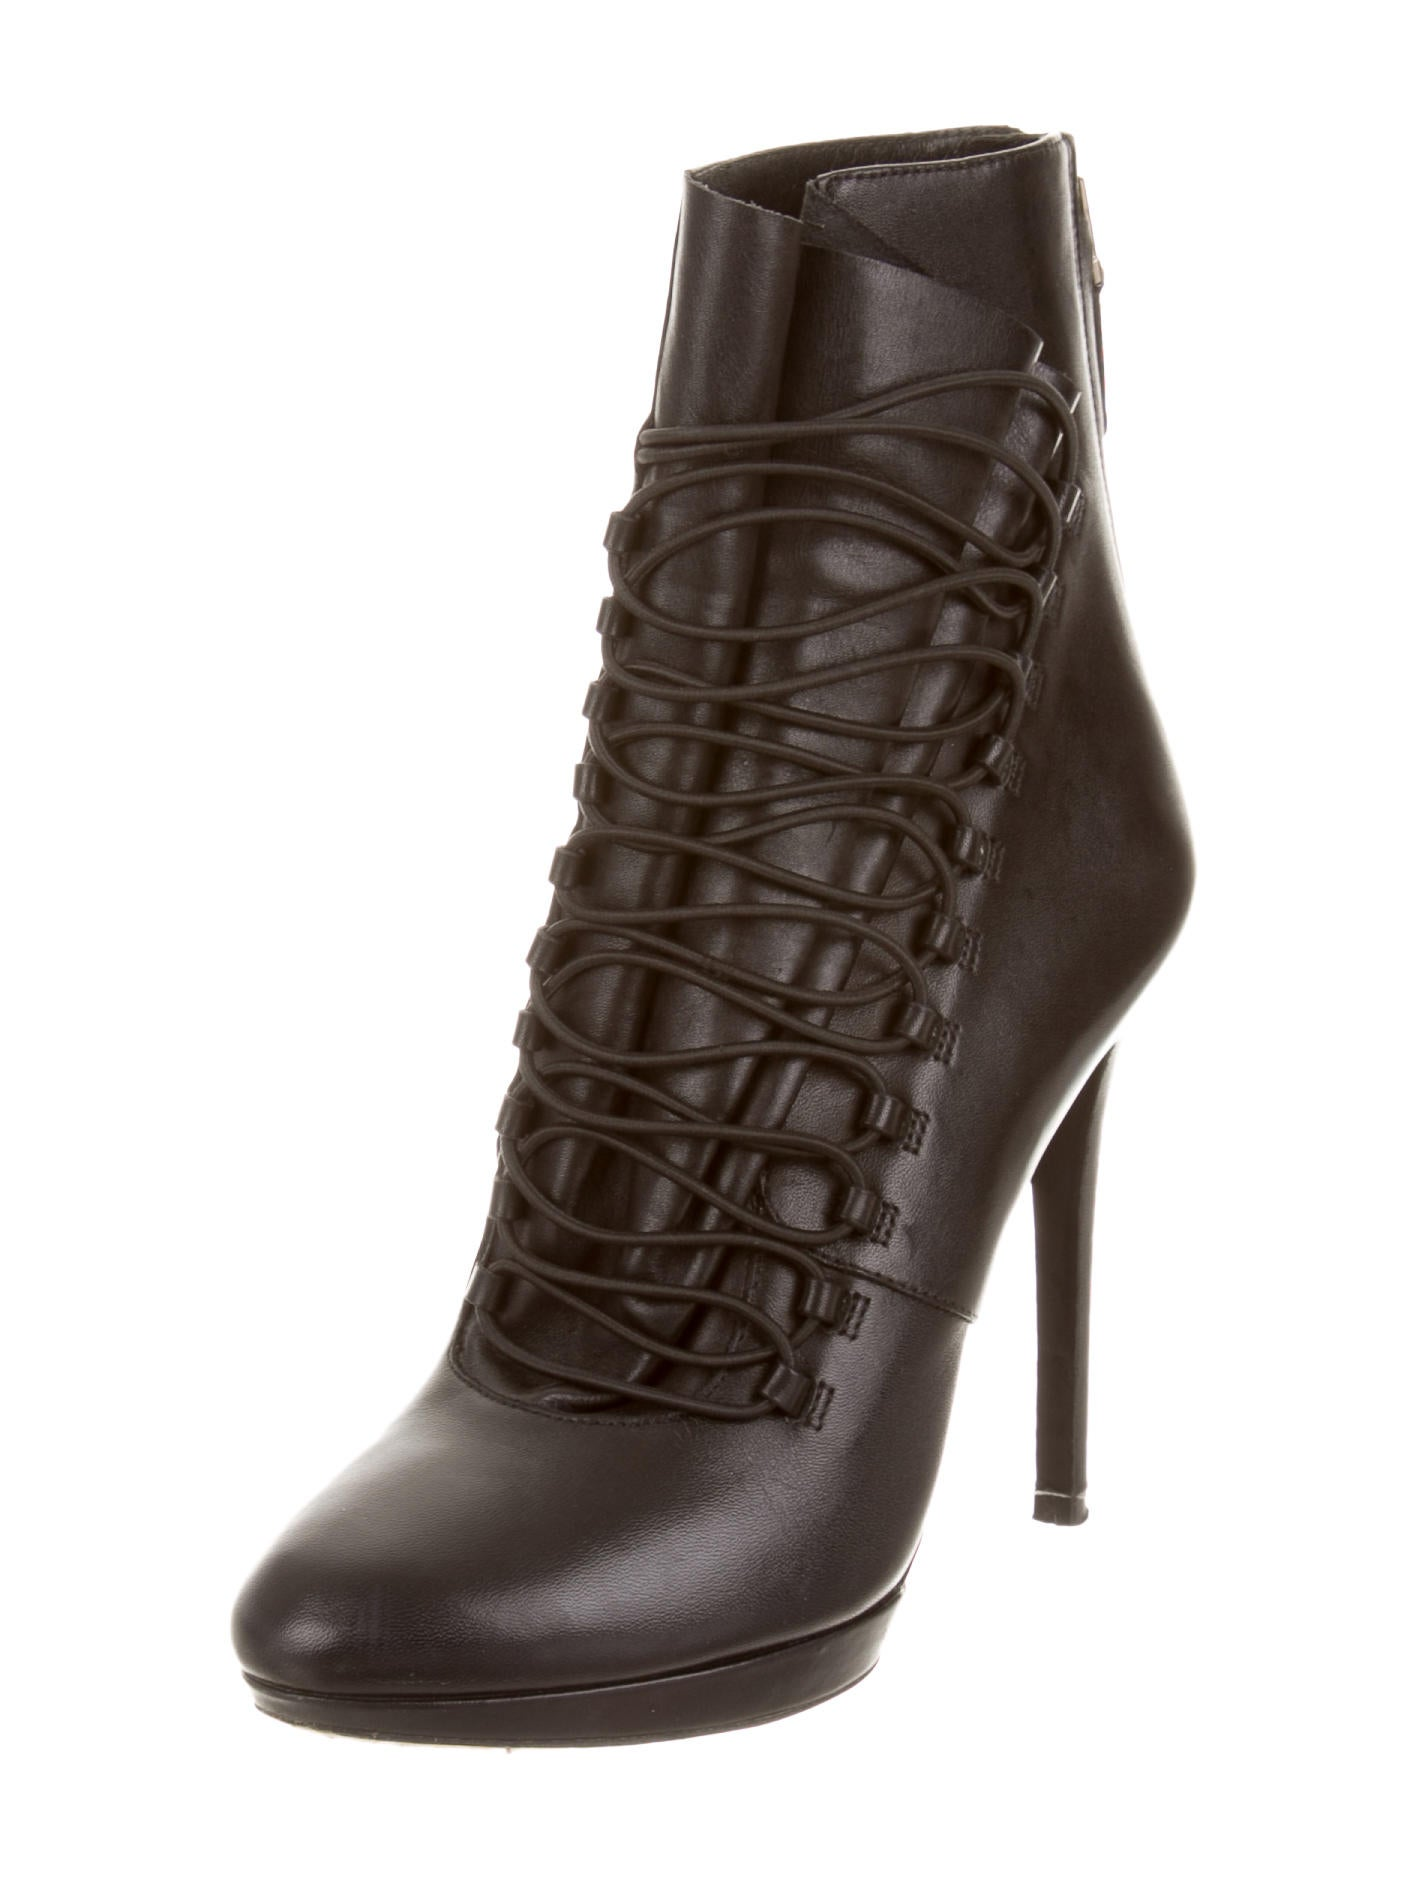 b brian atwood platform ankle boots shoes wbn21073